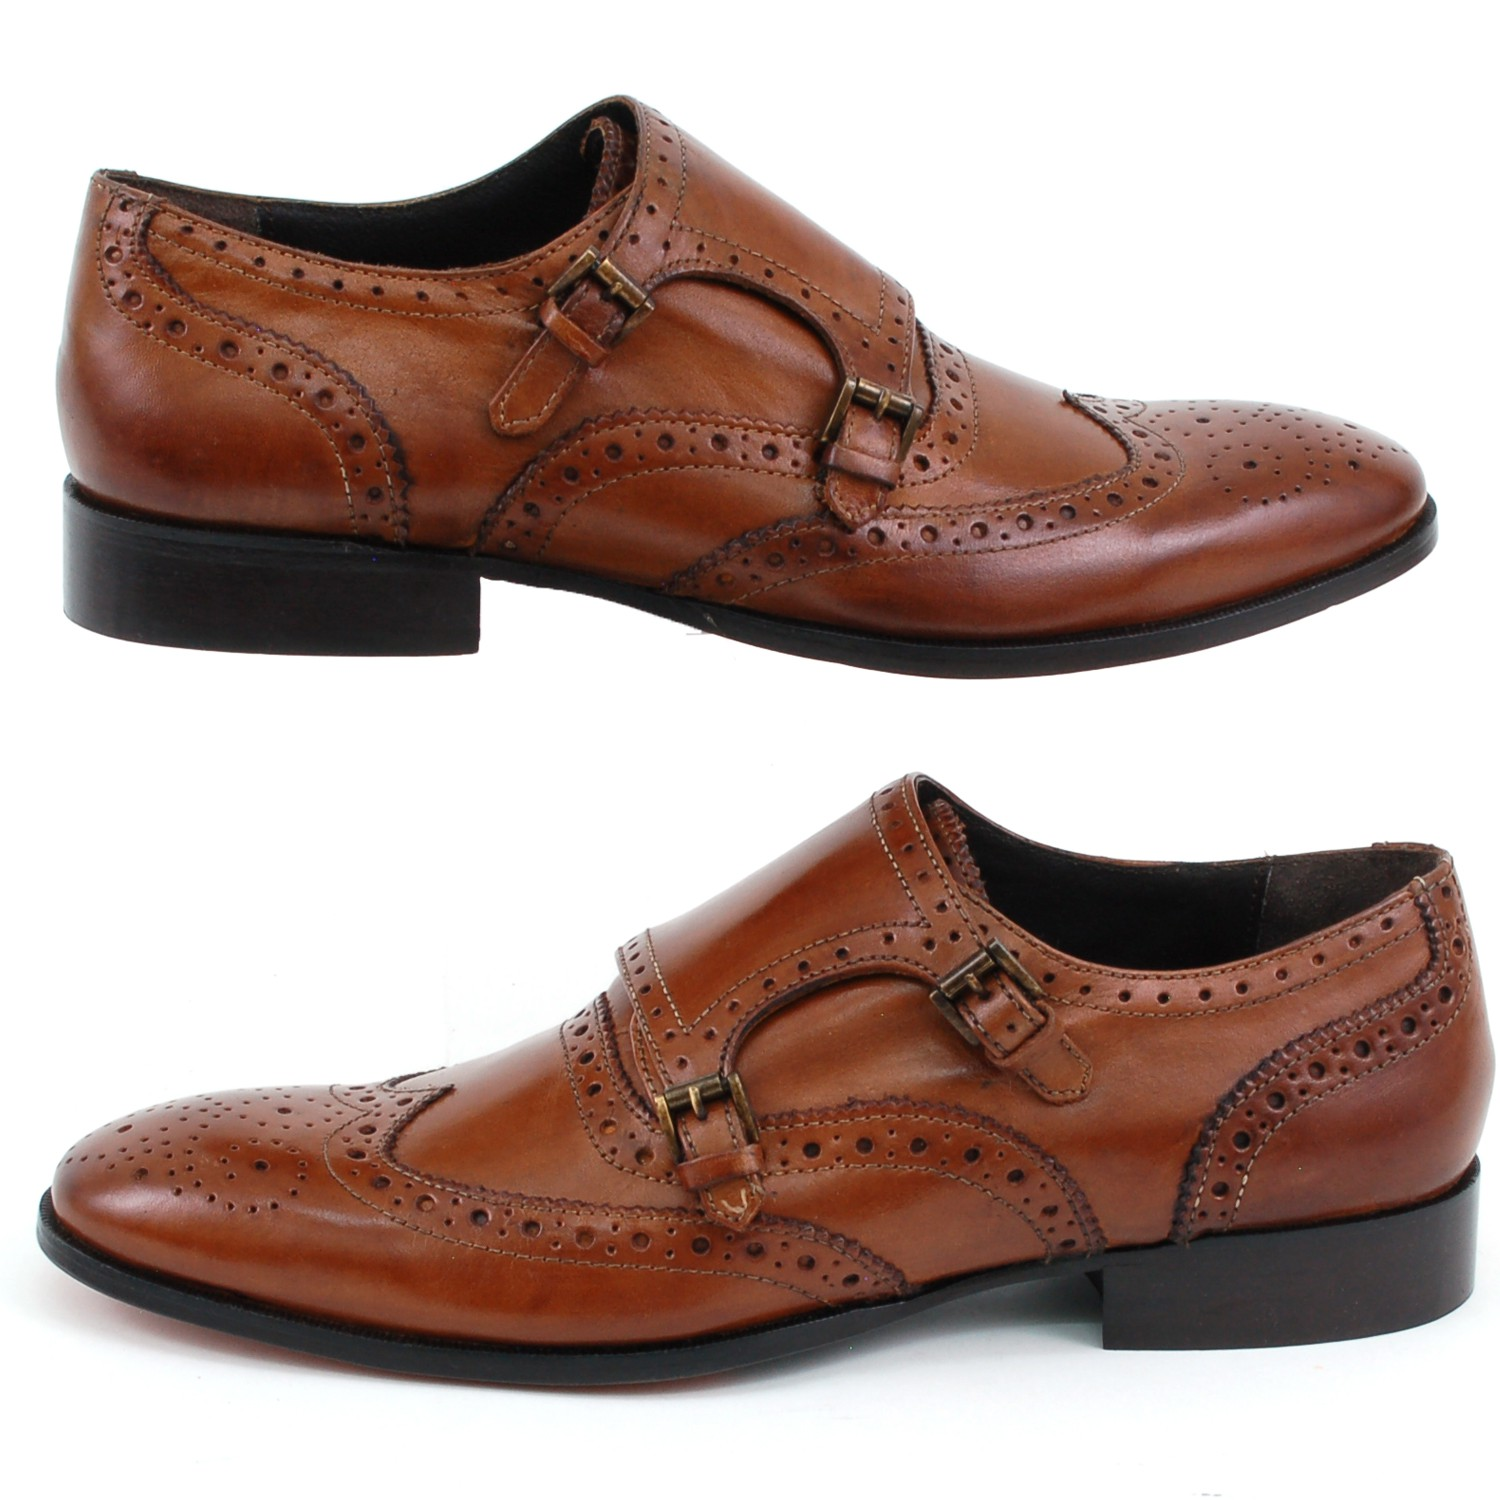 When you're shopping for men's dress shoes, it can often seem like style is a much easier goal to achieve than comfort. With all of Sears' available options, like men's oxfords and loafers, finding the perfect pair of shoes that both looks great your suit or jacket and feels great on .